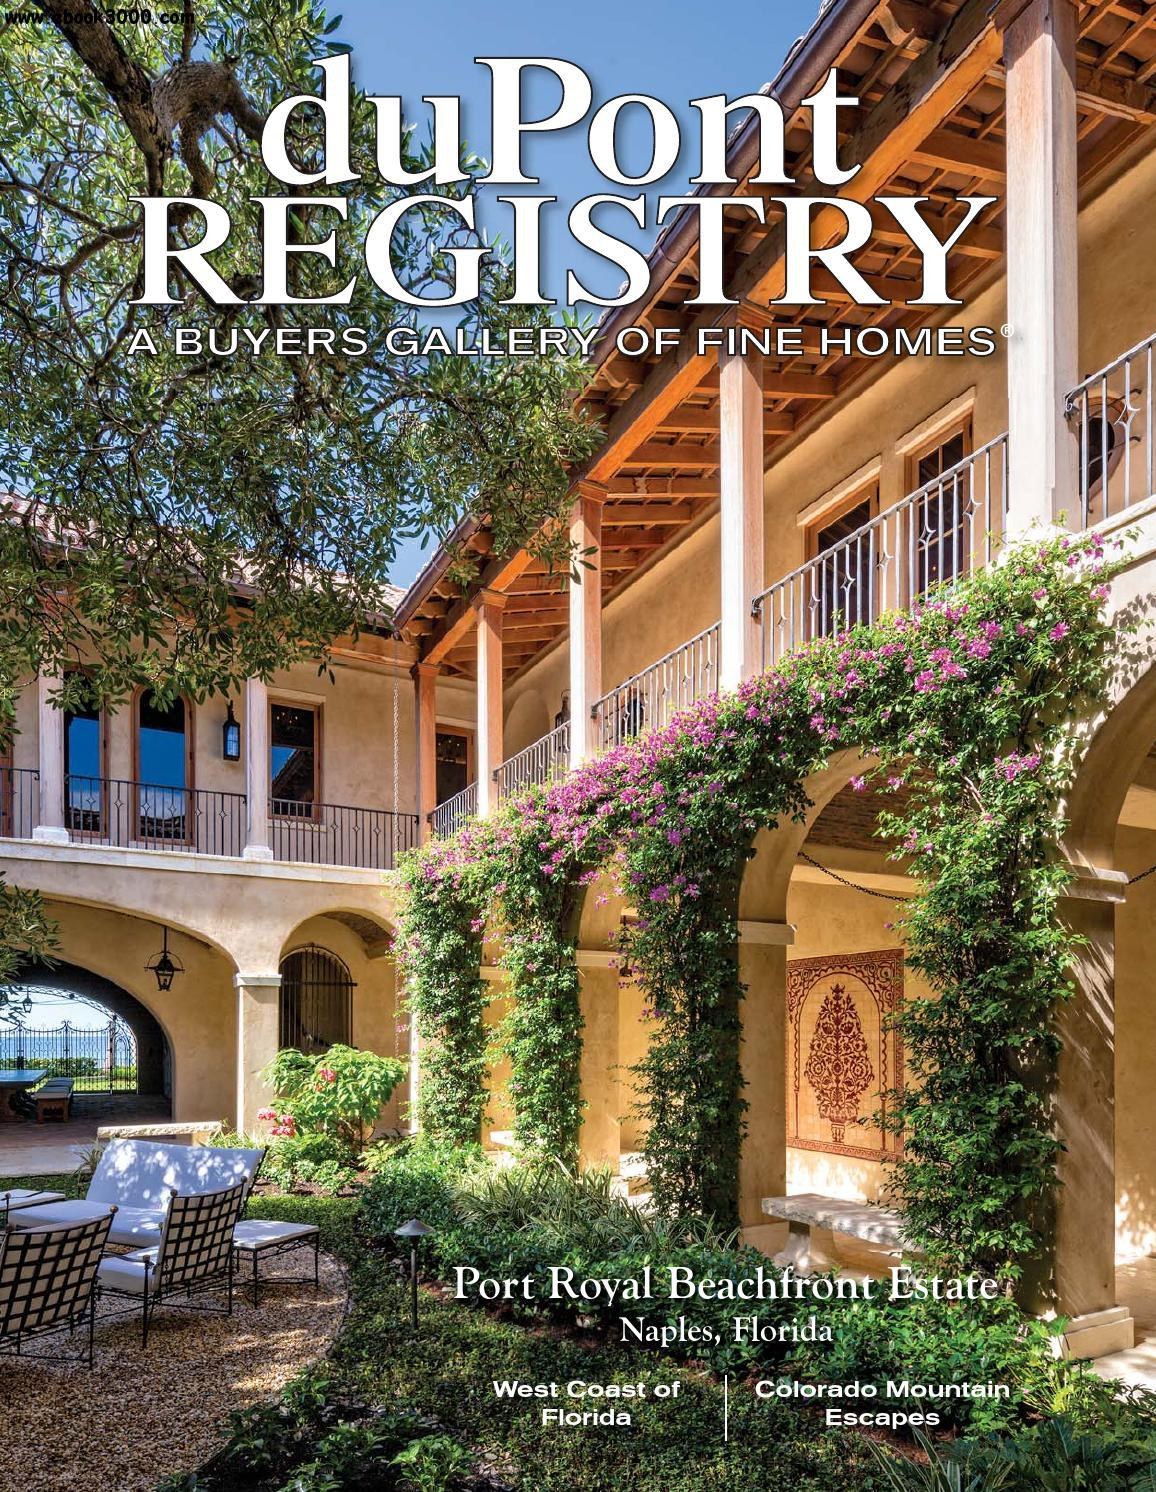 duPontREGISTRY Homes - April 2016 free download